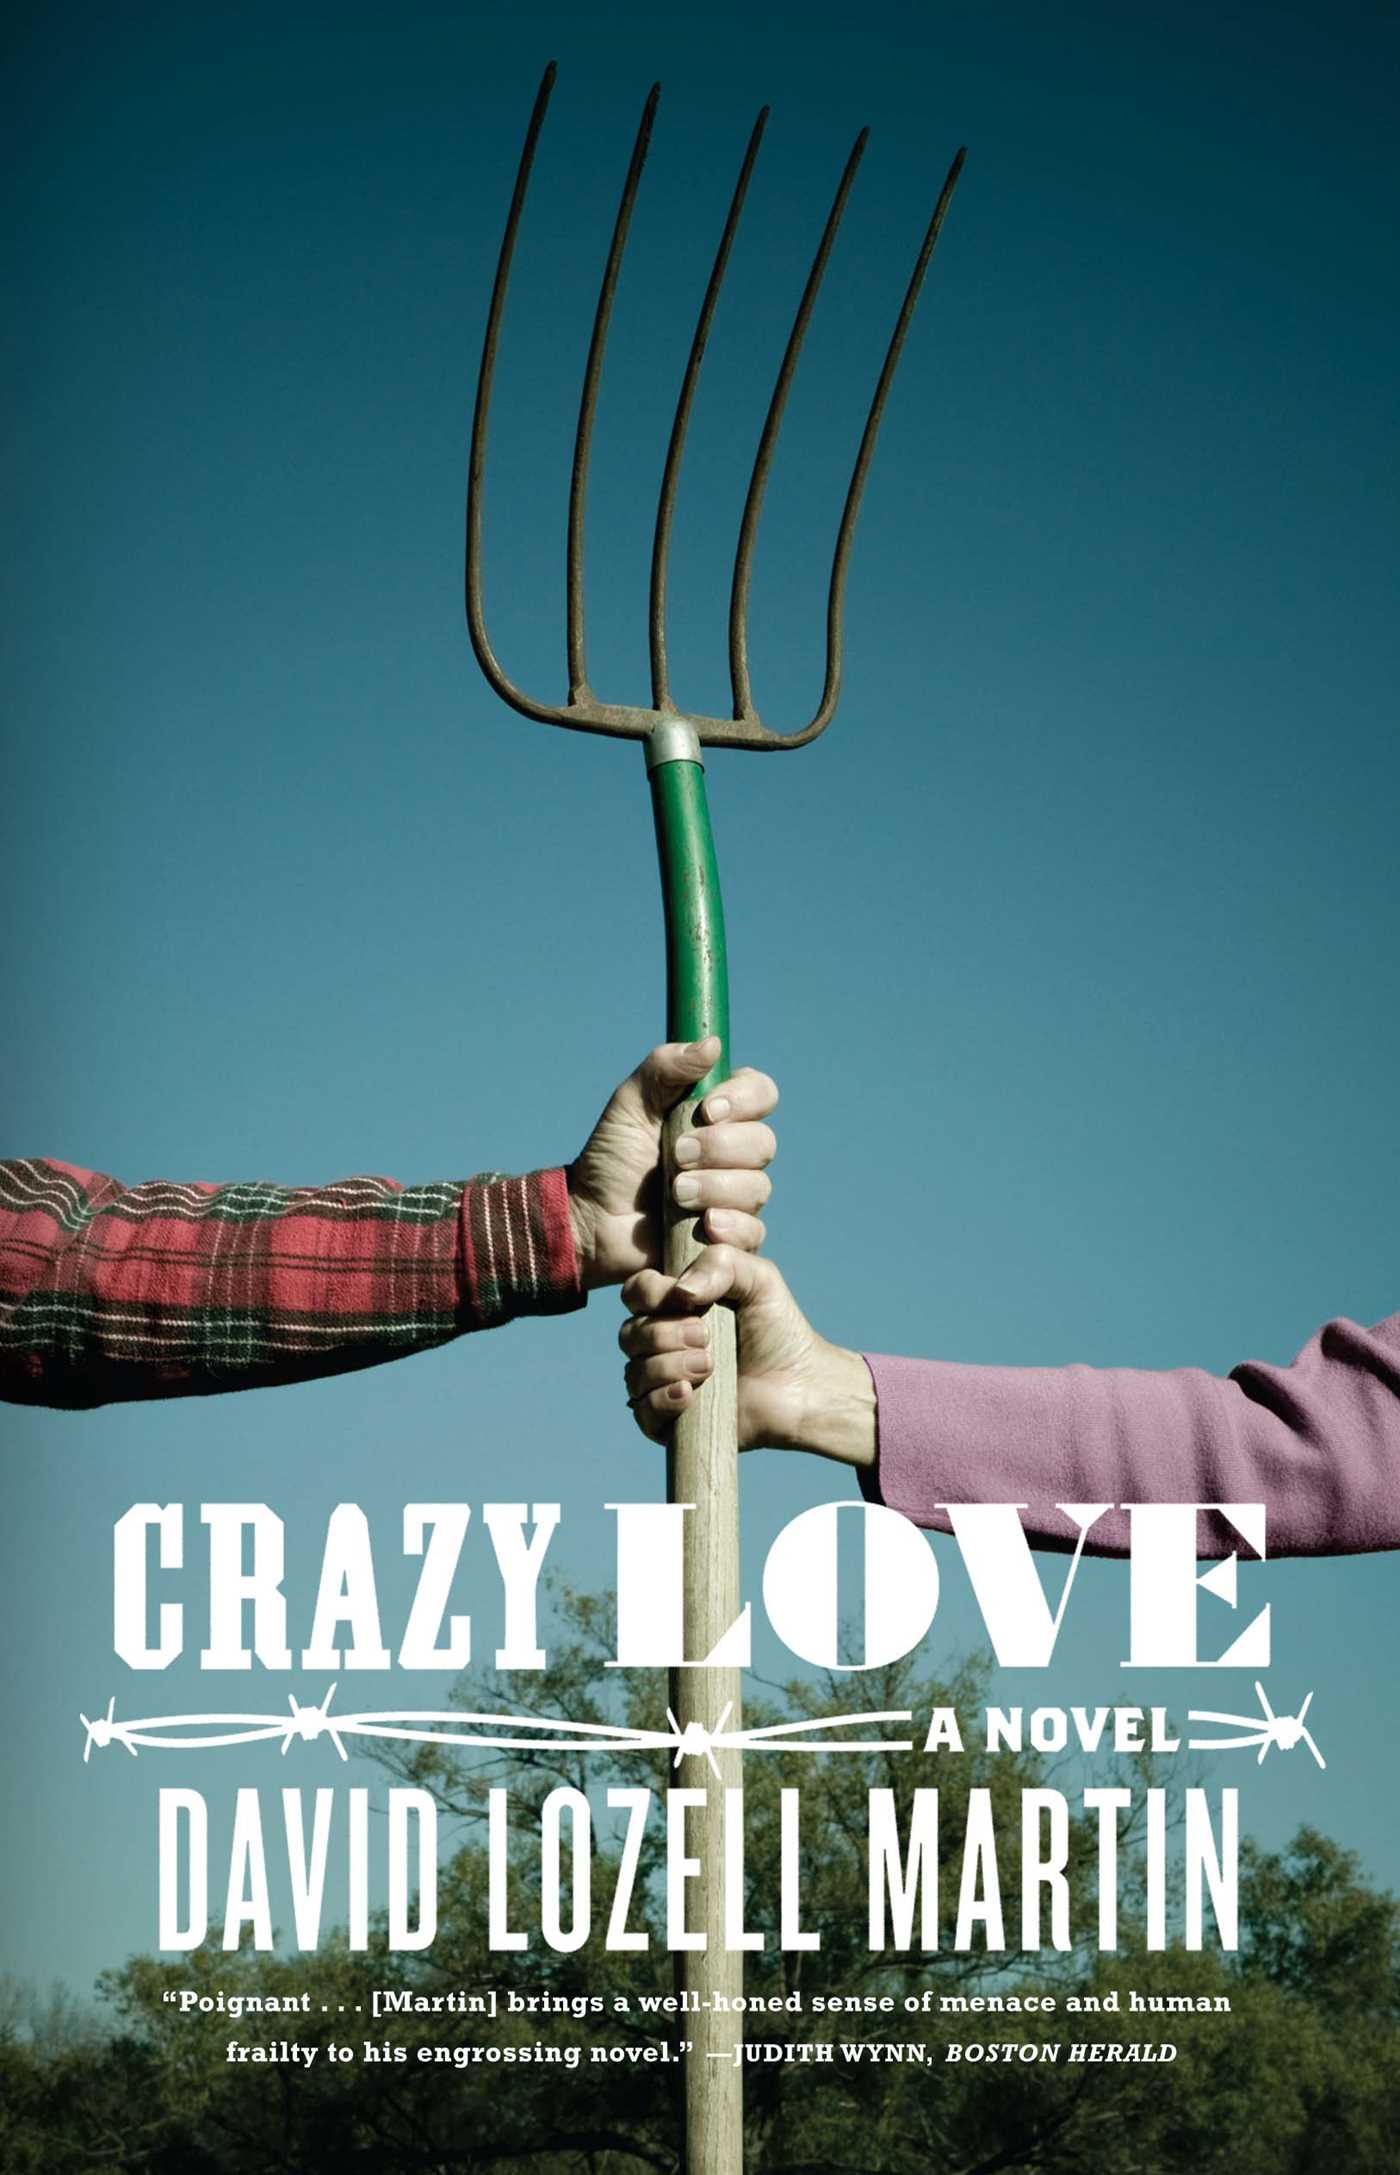 Crazy-love-9780743227643_hr